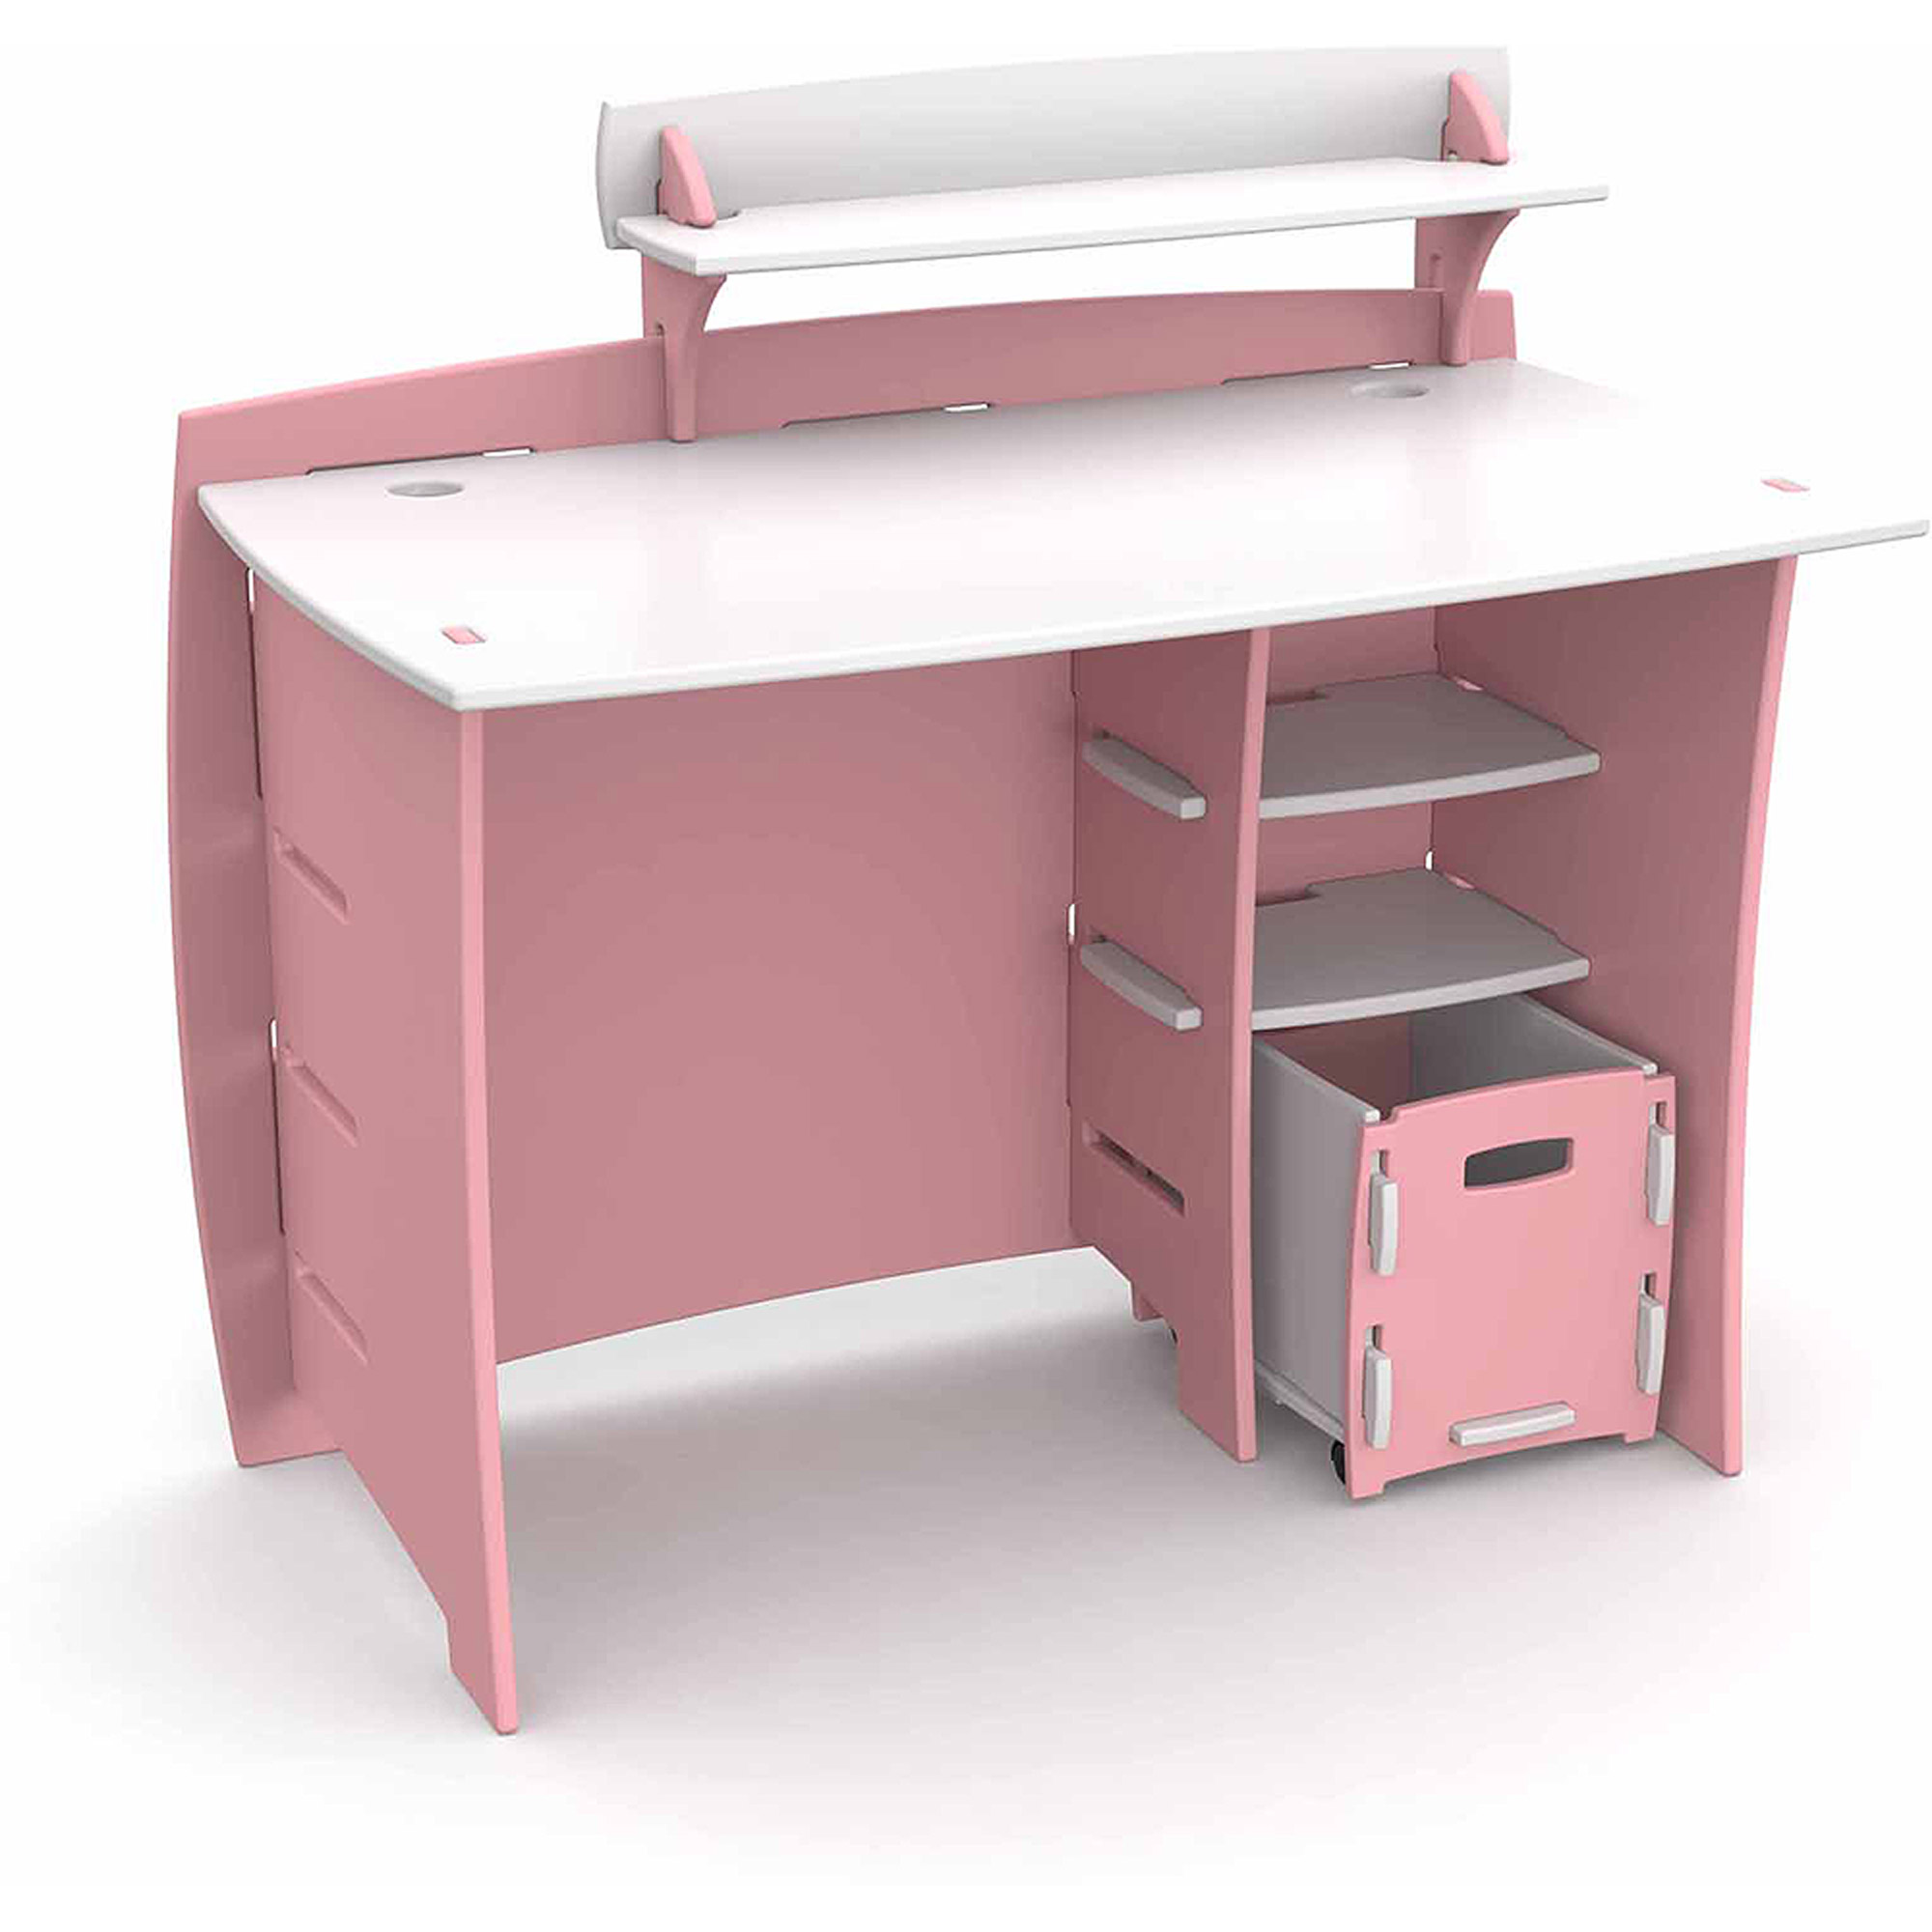 Legare Kids Furniture Princess Series Collection Complete Desk System Set, Pink and White by Kittrich Corporation